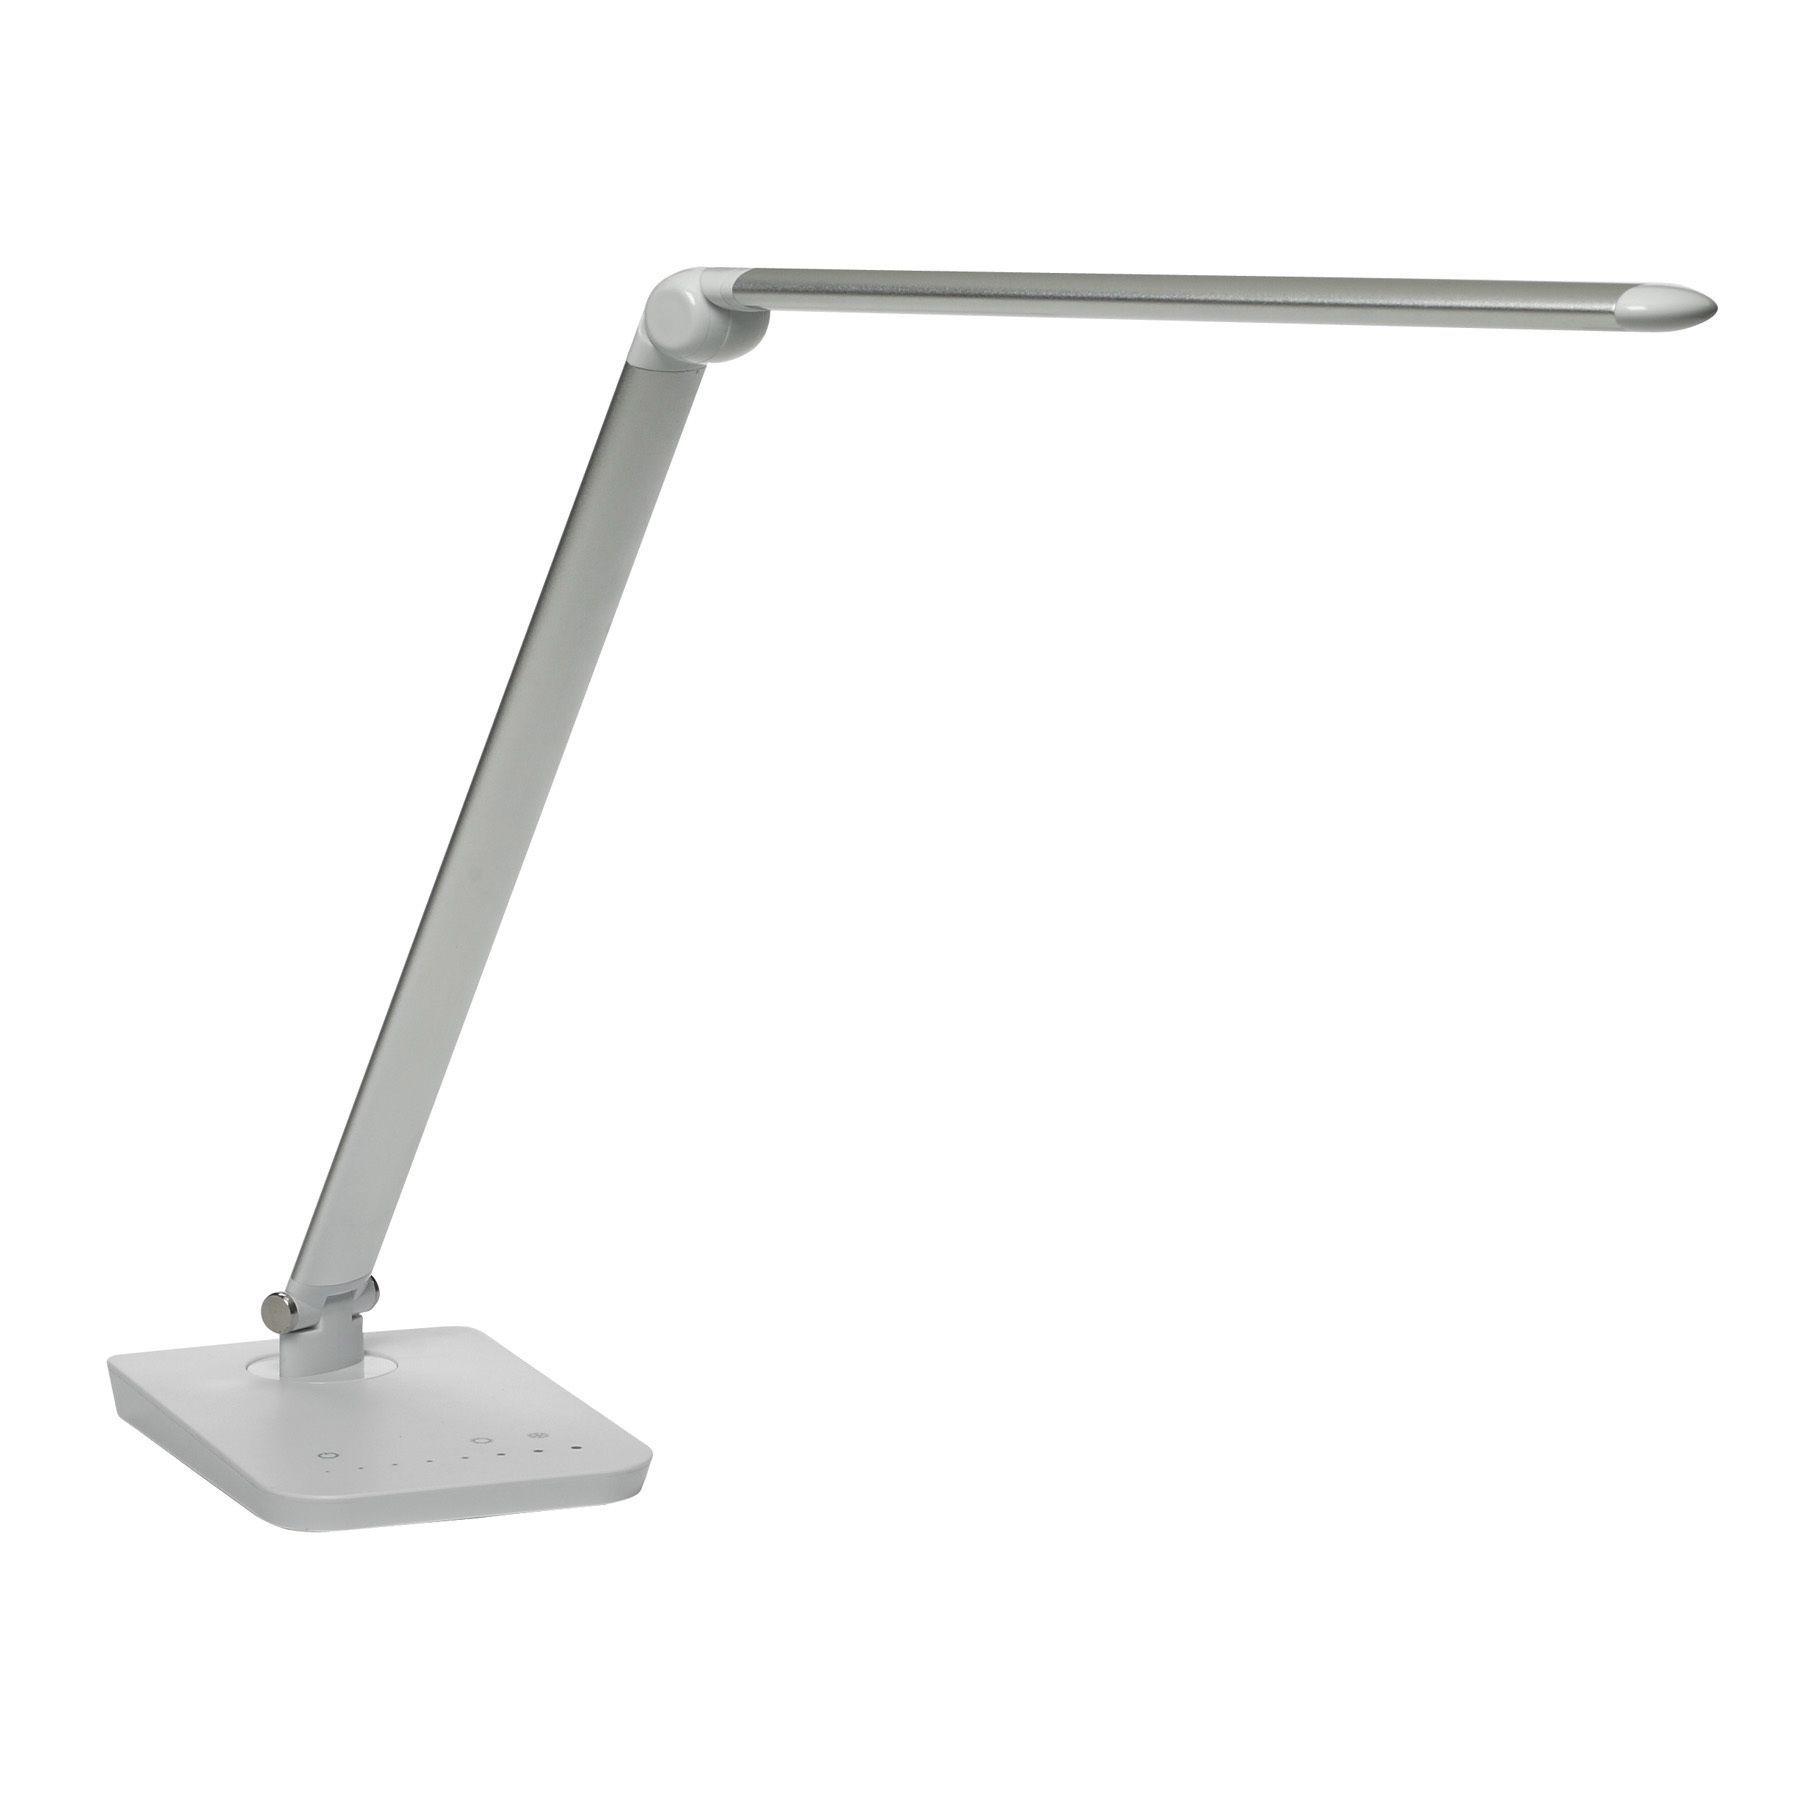 modern office lamps. Safco Vamp LED Modern Office Desk Lamp With USB Port And Dimmer Switch Lamps L